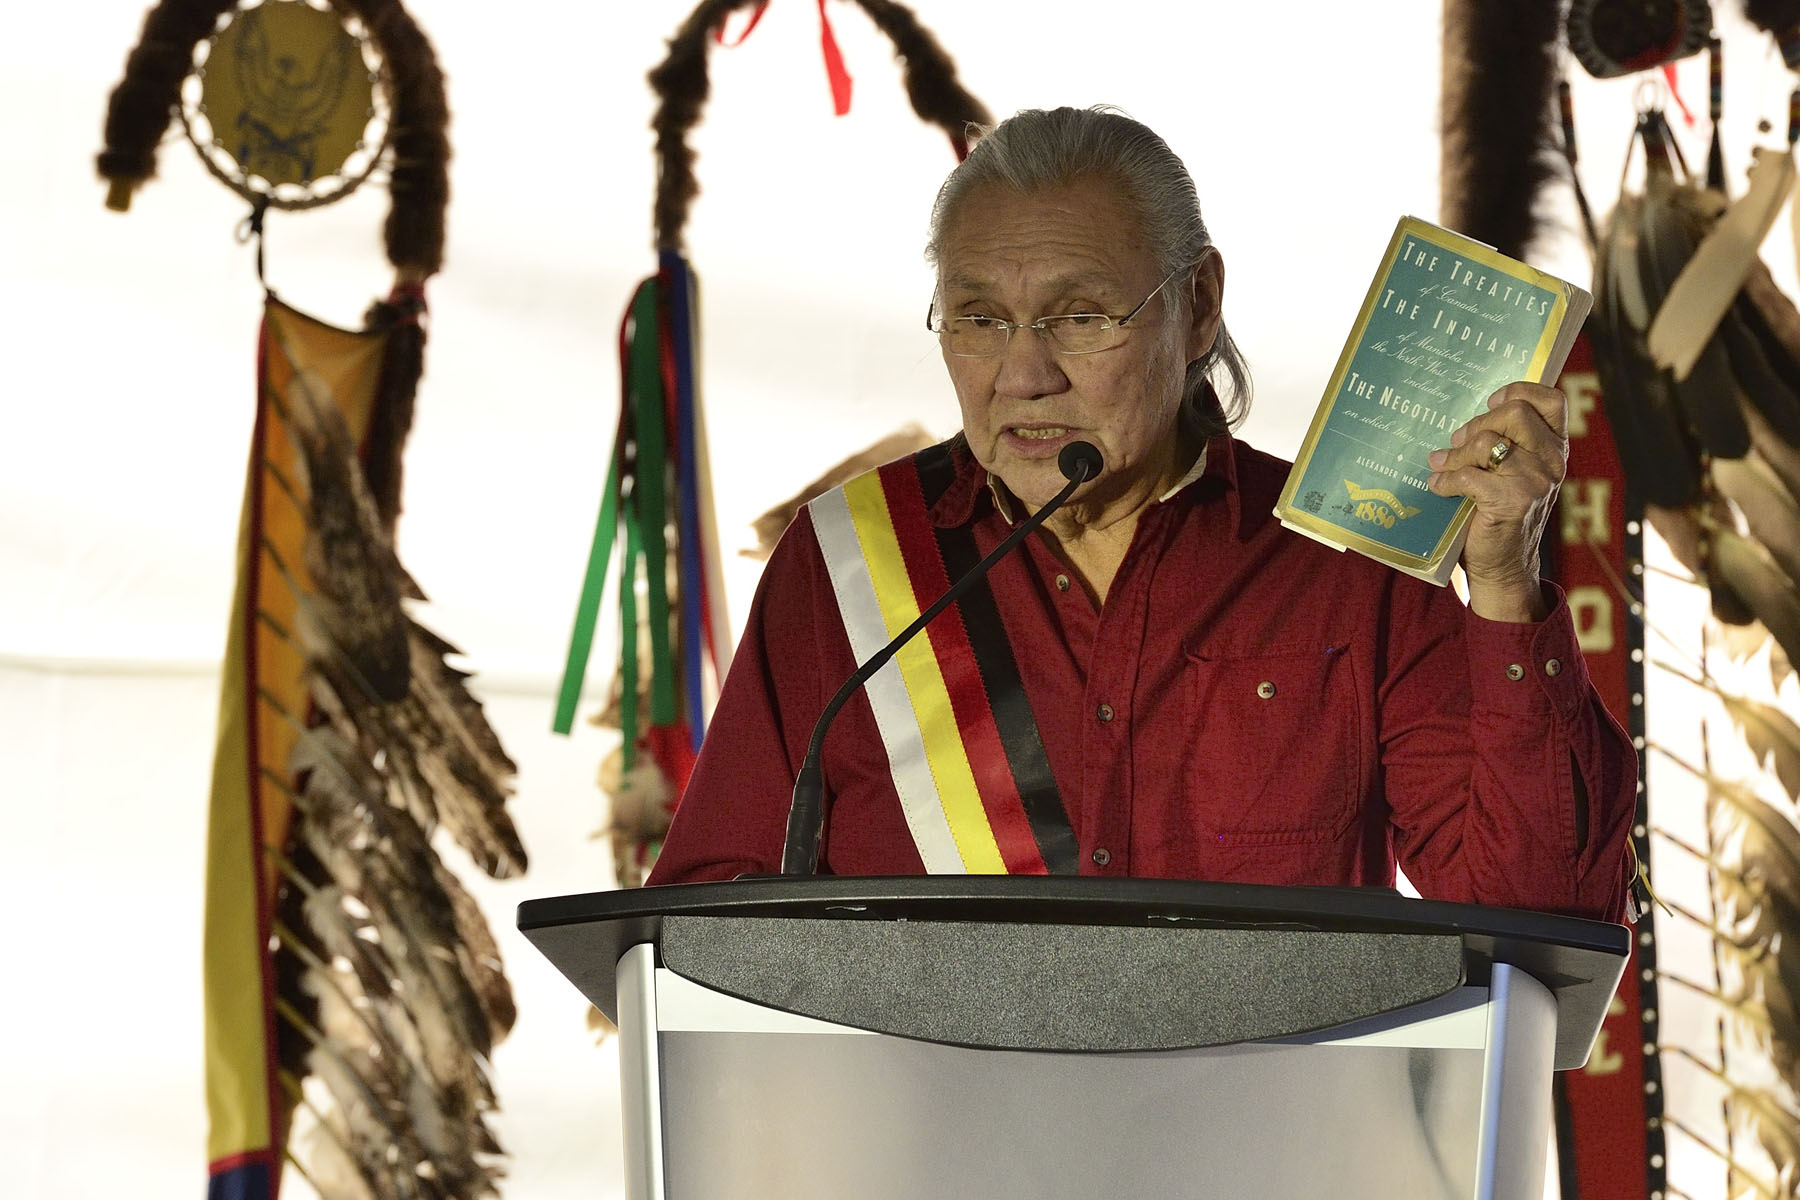 The Treaty No. 4 Protocol Ceremony takes place every year in the Qu'Appelle Valley, at Fort Qu'Appelle, during the second week of September. It is a celebration to recognize, discuss and evaluate Treaty No. 4, which was signed at Fort Qu'Appelle on September 15, 1874, by Queen Victoria and the Cree and Saulteaux First Nation band governments.